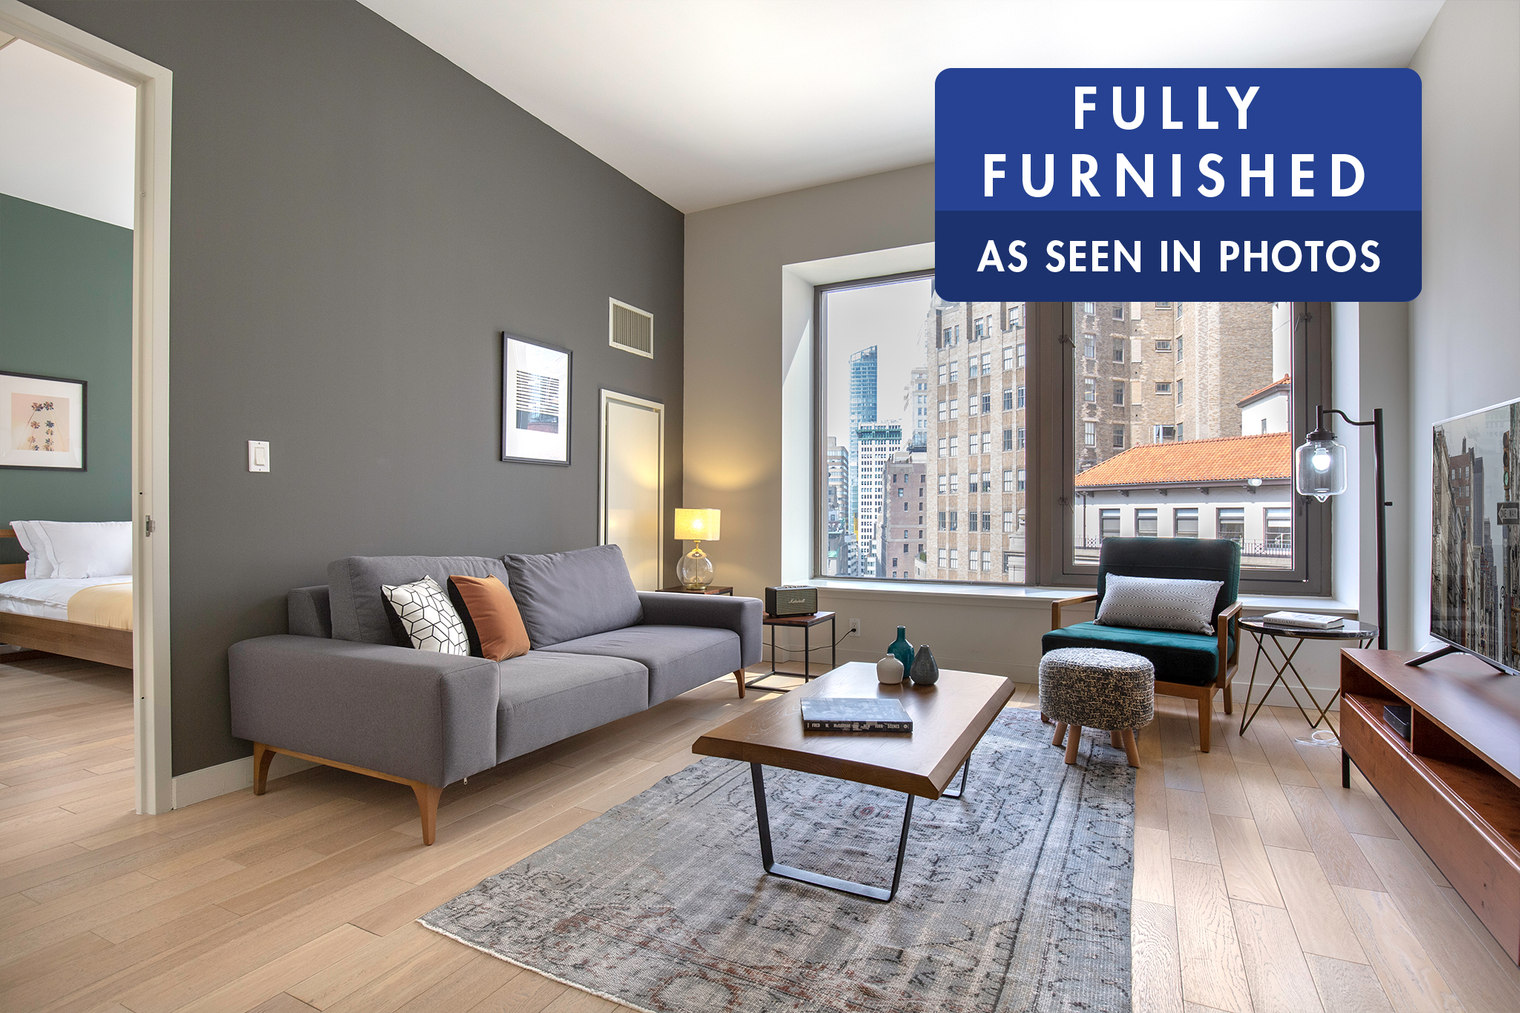 * Price varies by duration of stay: 12+ month lease: $4,900 * / mo 6 to 12 month lease: $5,000 * / mo 3 to 6 month lease: $5,700 * / mo* Prices quoted are applicable only if billed upfront for the entire duration of the contract. Rates are up to 9% higher if billed monthly. Prices are exclusive of any taxes (applicable only for leases below 180 days) or utilities.Follow the link to book online! https://www.theblueground.com/furnished-apartments-new-york-usa/downtown-financial-district-251?utm_source=classified-5This beautifully furnished 1-bedroom apartment in the Financial District is available and ideal for short to long-term stays (3-12+ months).Key features-Designer and custom made furniture-Full kitchen equipment-Quality 5-star hotel mattress, linen & towels-Wide-screen TV, wifi speaker, coffee machine-In-unit washer/dryerSupport & Services-Access to our mobile app-Maintenance-Cleaning and laundry on demand-Bills HandlingBuilding-Gym-24-hour doorman-Concierge -ElevatorLocation & POI DistancesThis furnished apartment is located in the Financial District, also known as FiDi. Home to Wall Street and the One World Trade Center, it is a constant hub of activity. During the week the sidewalk is always bustling and the restaurants are filled with professionals. The glittering skyscrapers and well-known landmarks make this one of the city's most recognizable neighborhoods. By Subway, Times Square is about 20 minutes away.Building amenities may have an extra costBrokers CYOF